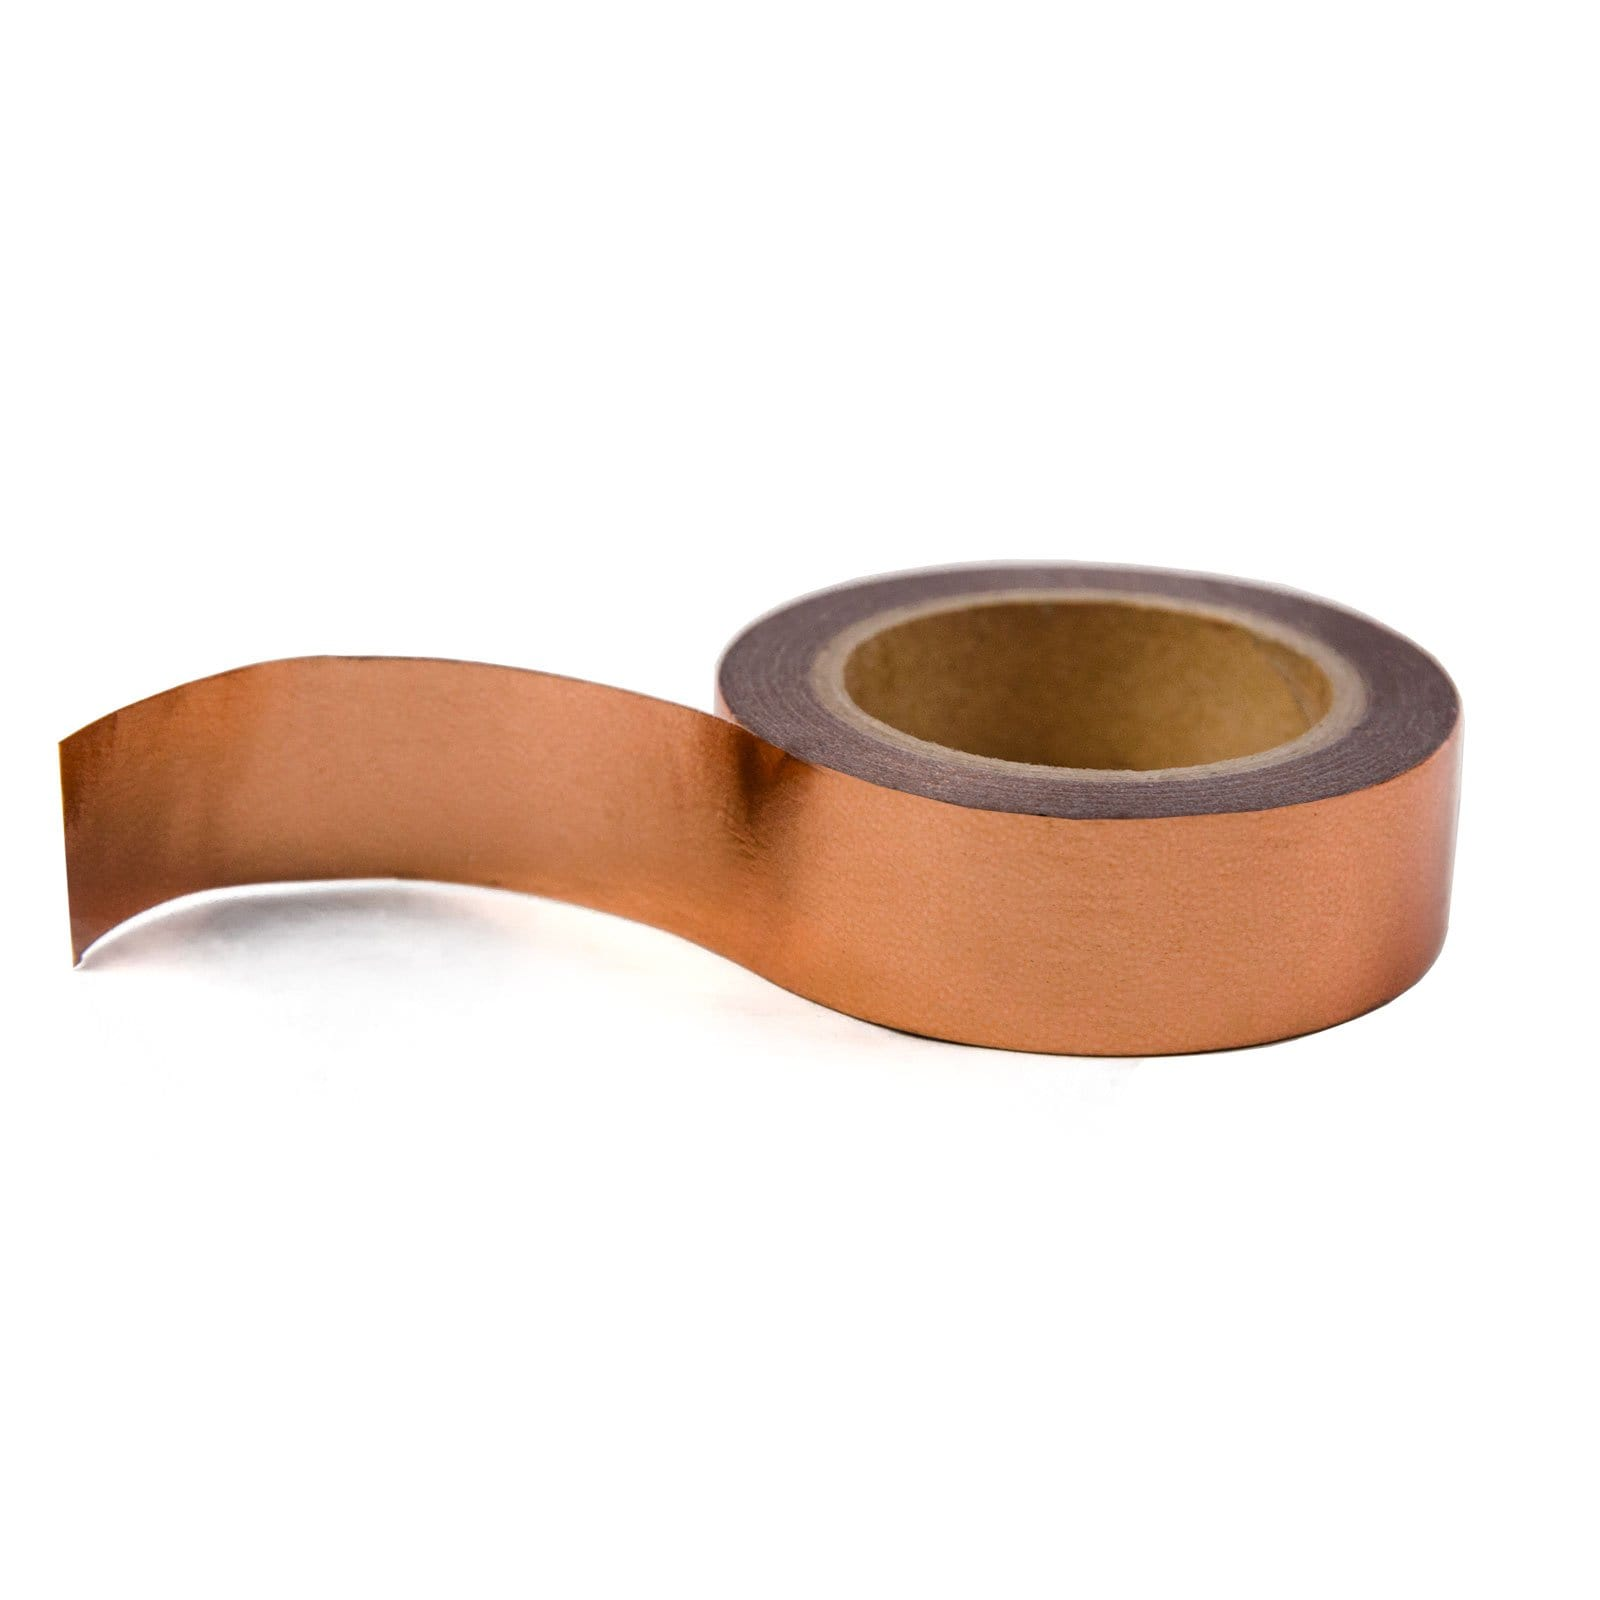 Copper Washi Tape